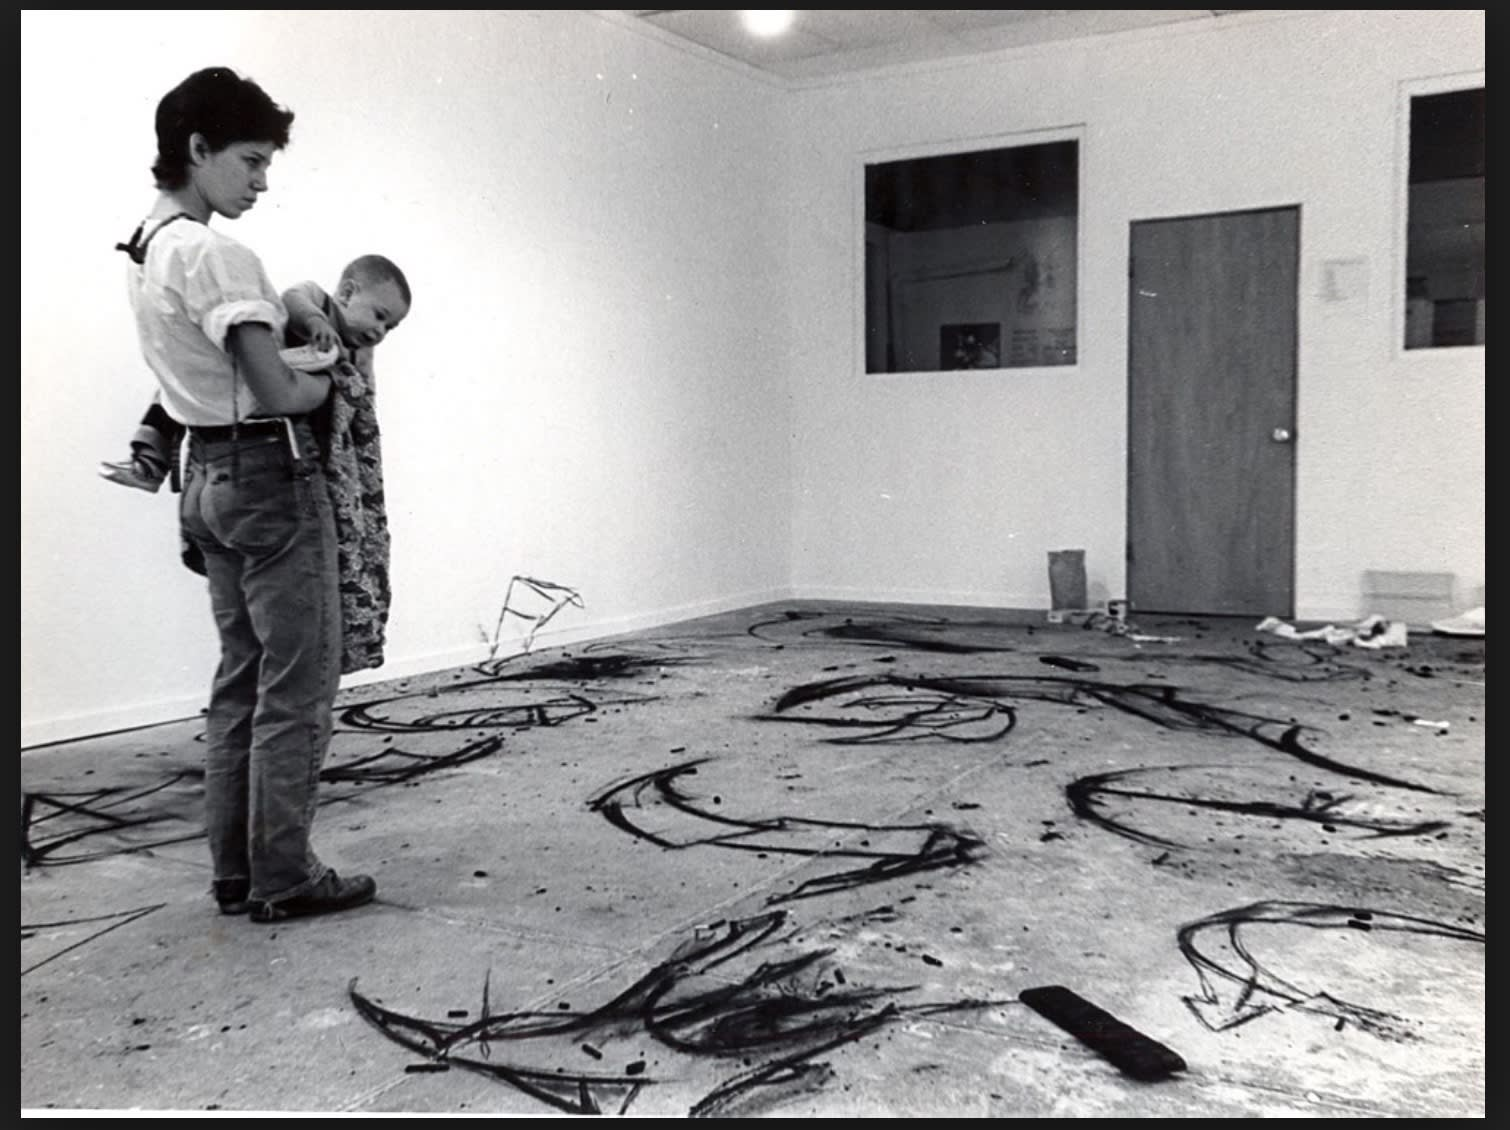 Judy Rifka and her son at the studio, 1978. (c) Judy Rifka and PULPO GALLERY